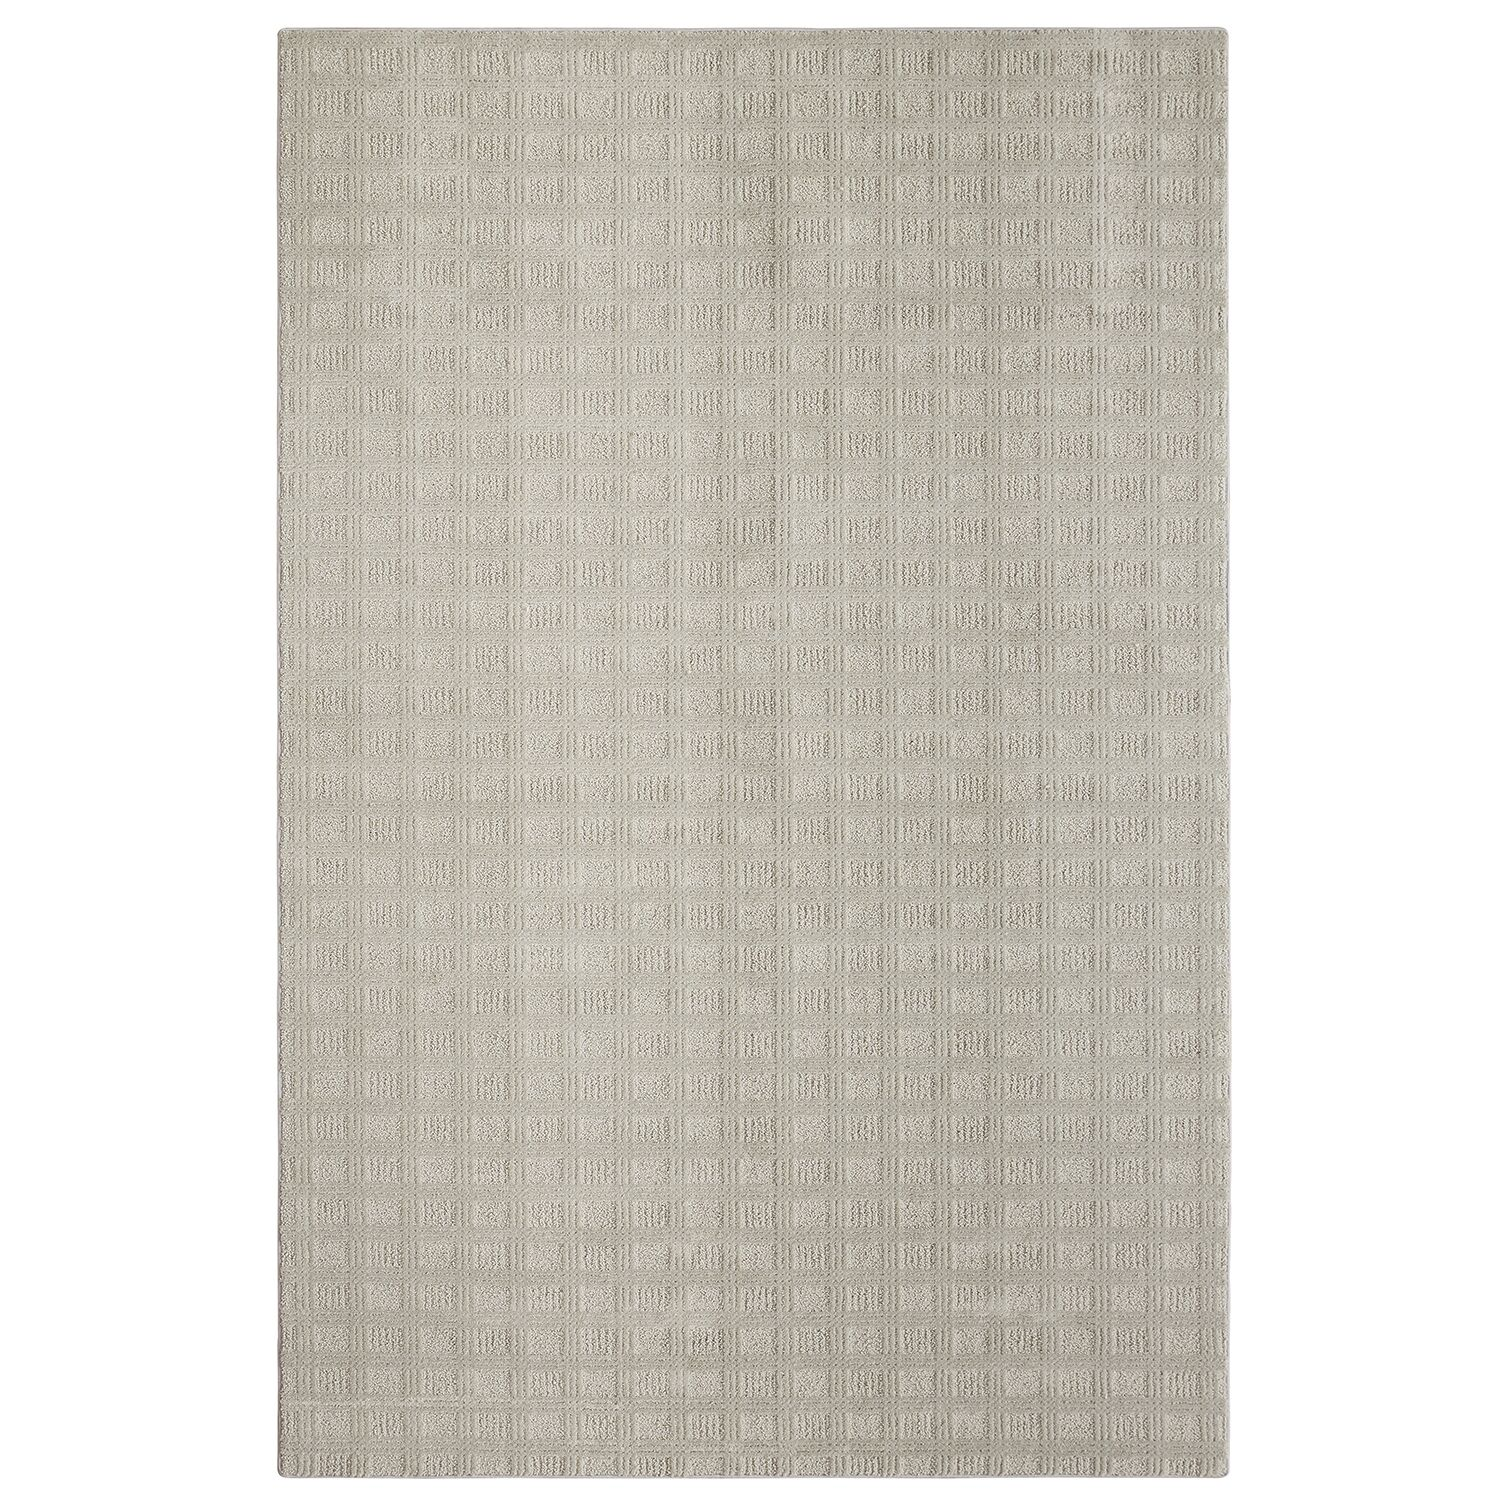 Bettie Hand-Tufted Marble Gray Area Rug Rug Size: Rectangle 9' x 12'